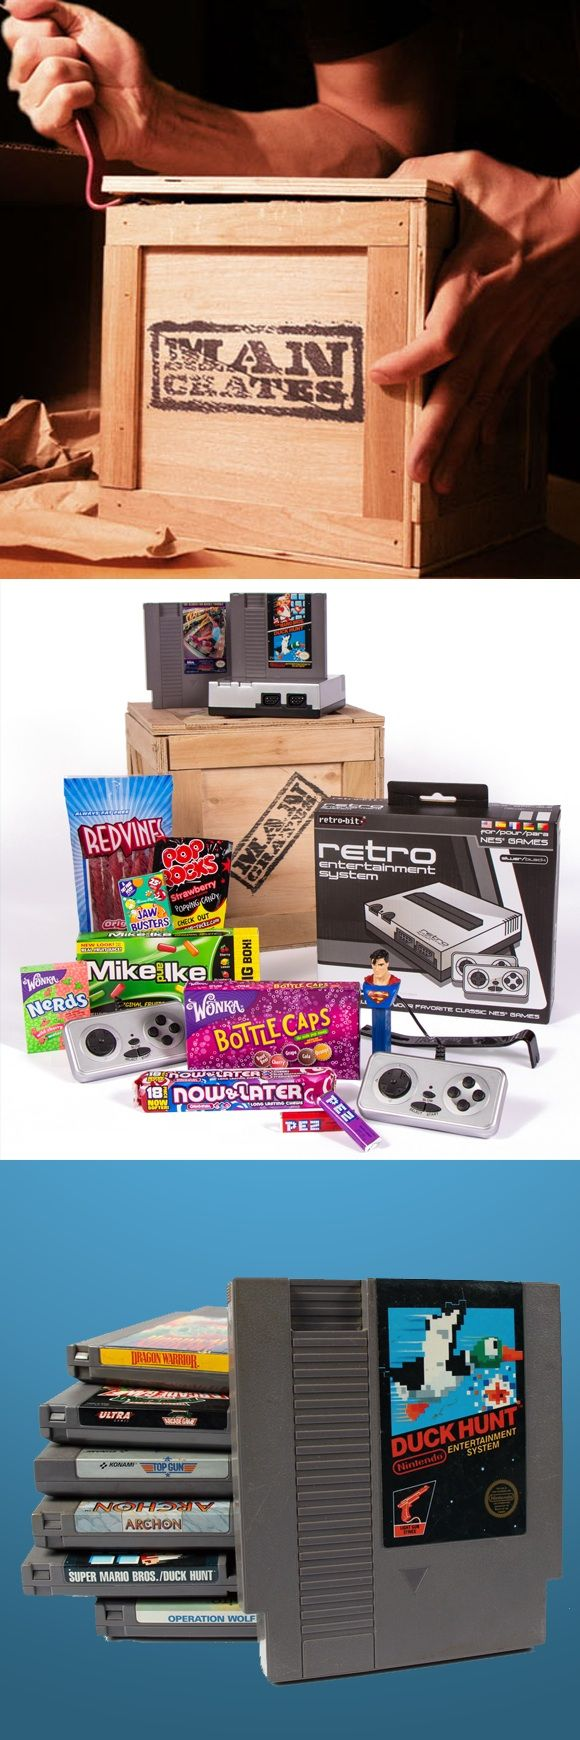 Man crate full of retro games and junk food. Actually really cool. I'd love this. -D